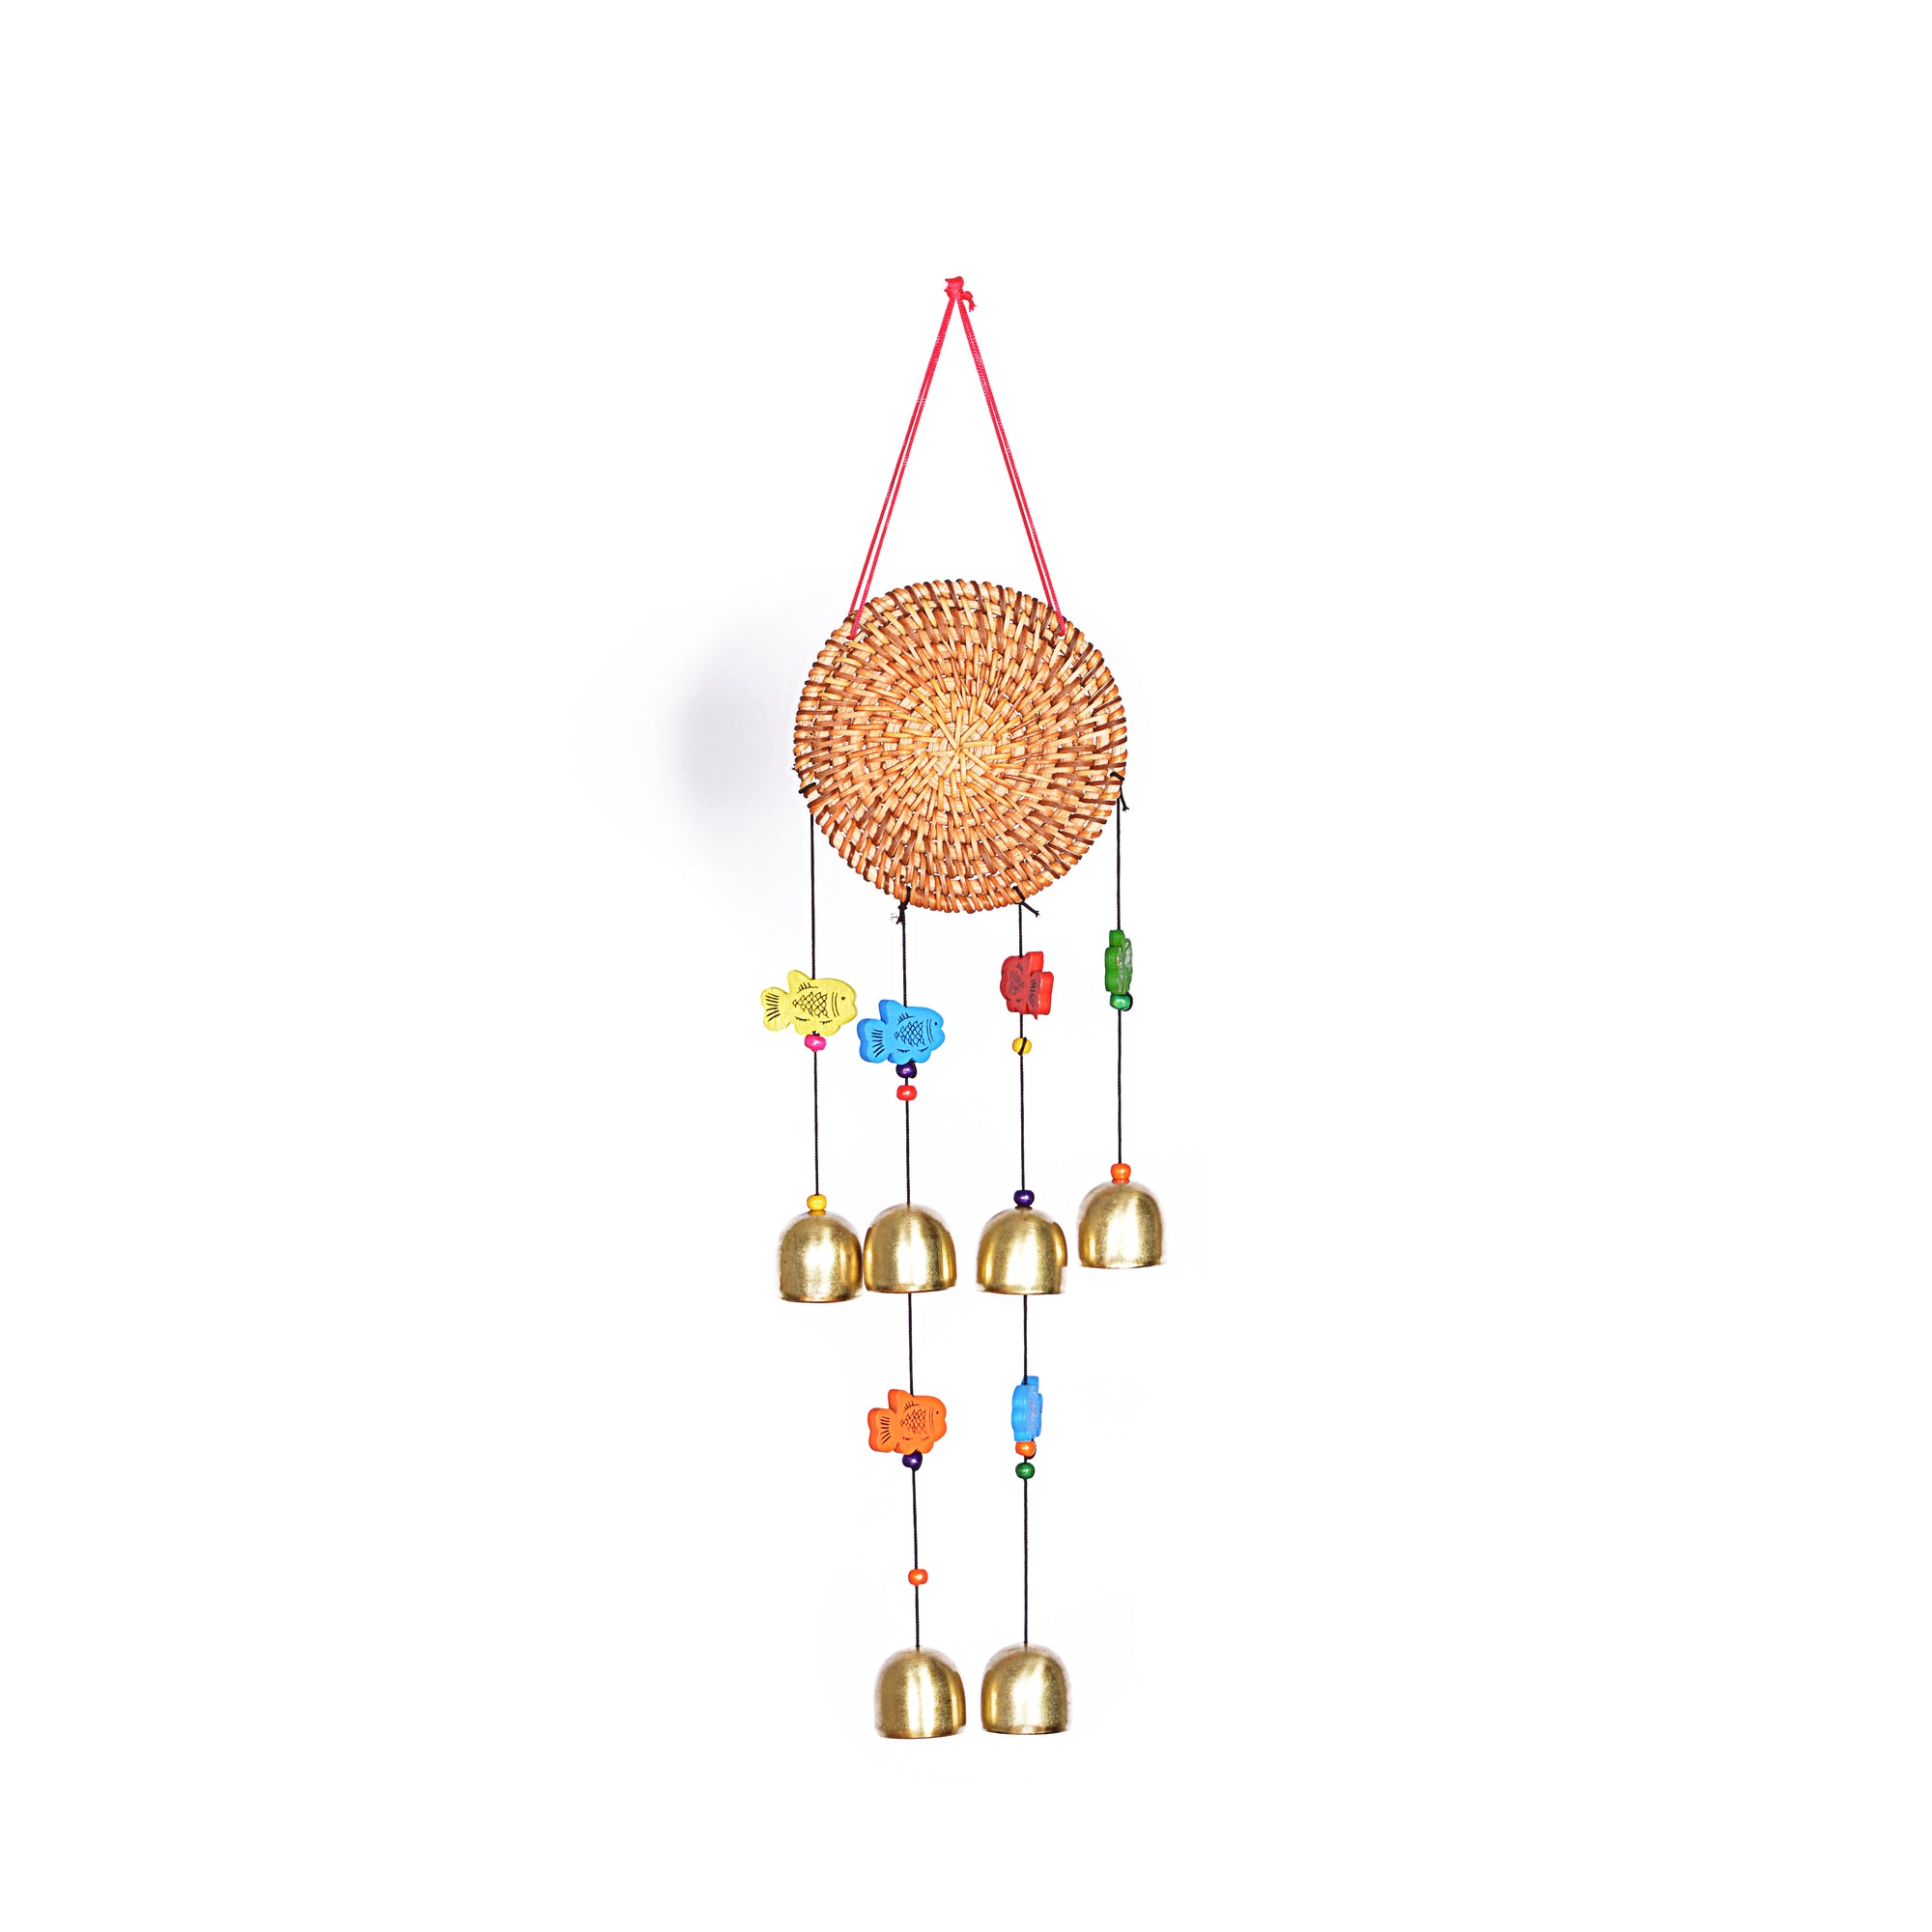 Wind Chimes with Decorative Round Design